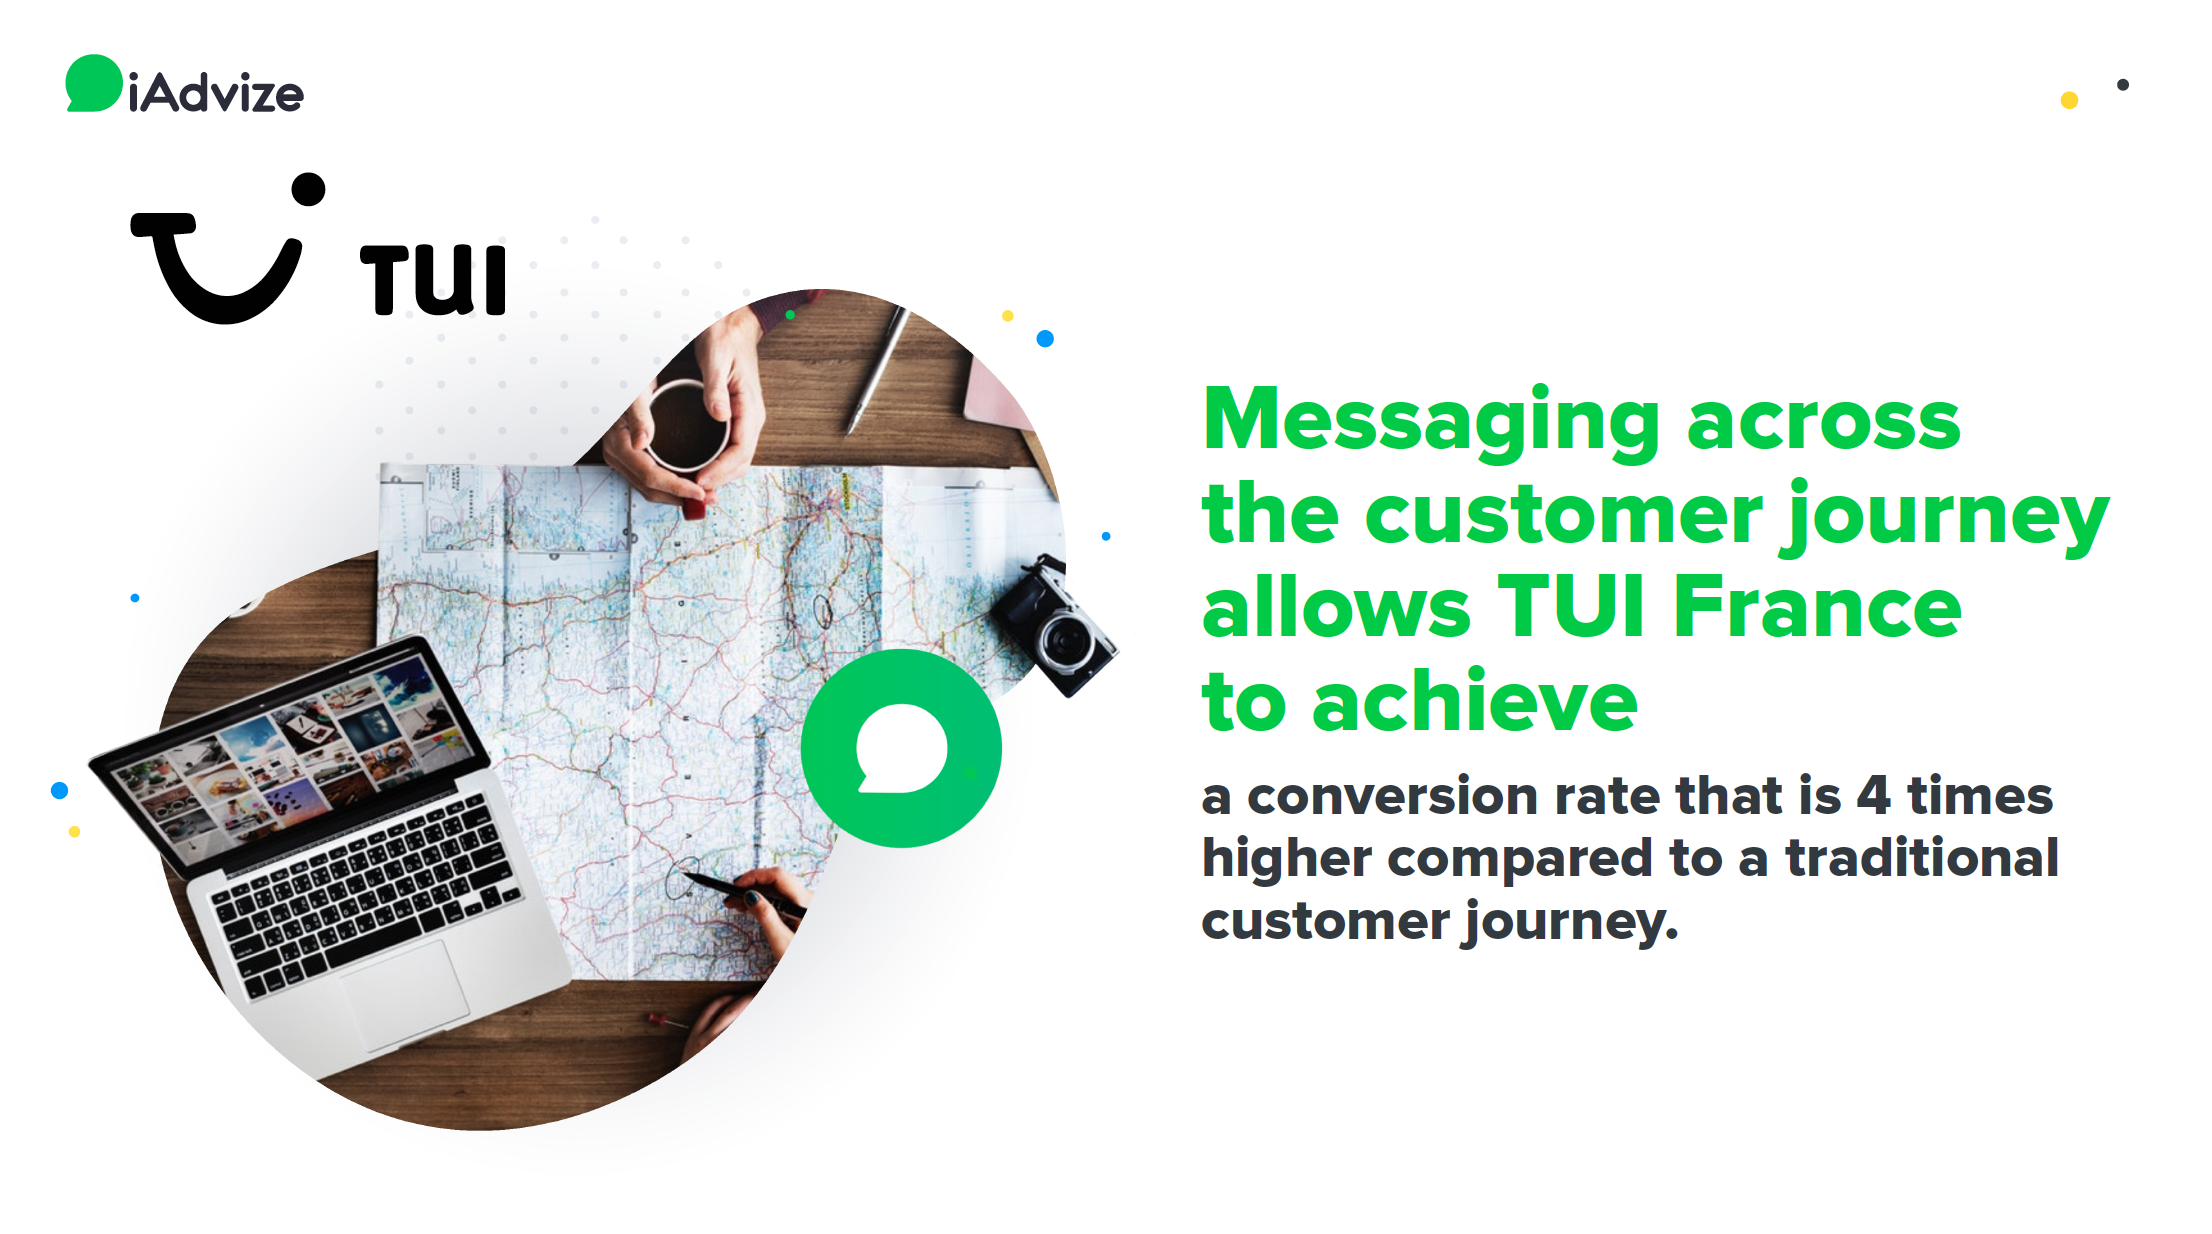 TUI success story: messaging across the customer journey allows TUI France to achieve a conversion rate that is 4 points higher compared to a traditional journey